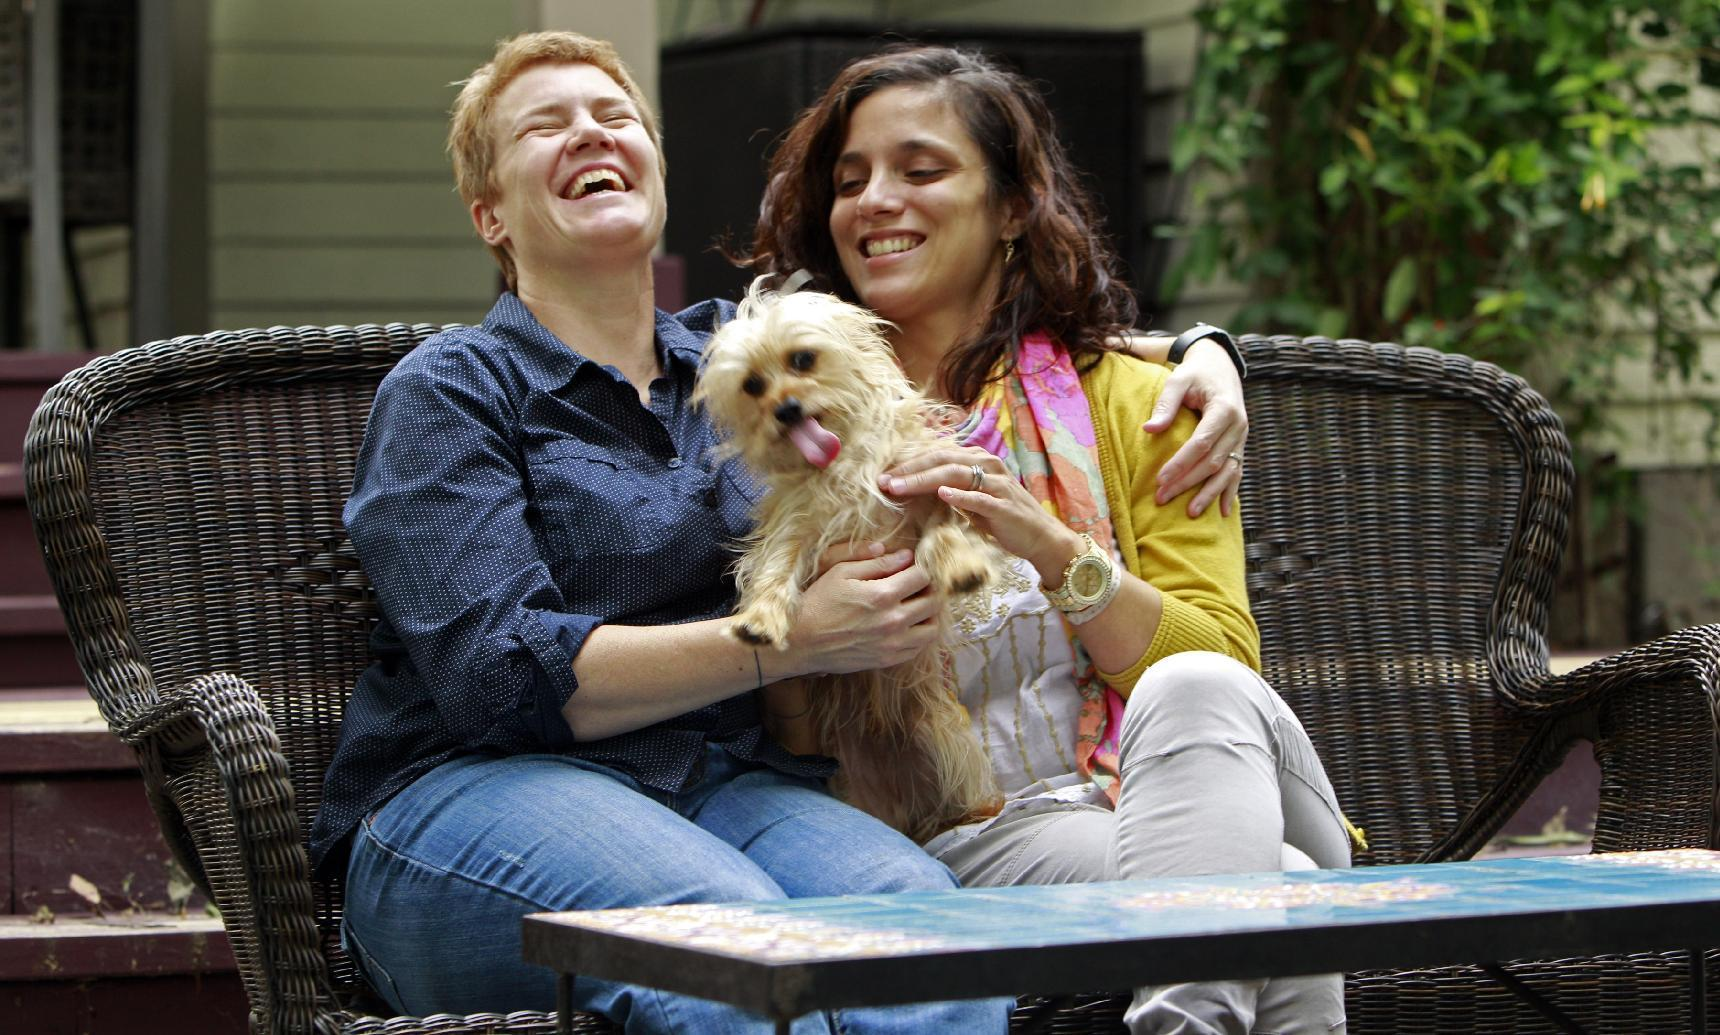 Gay marriage issue complicates immigration, motherhood